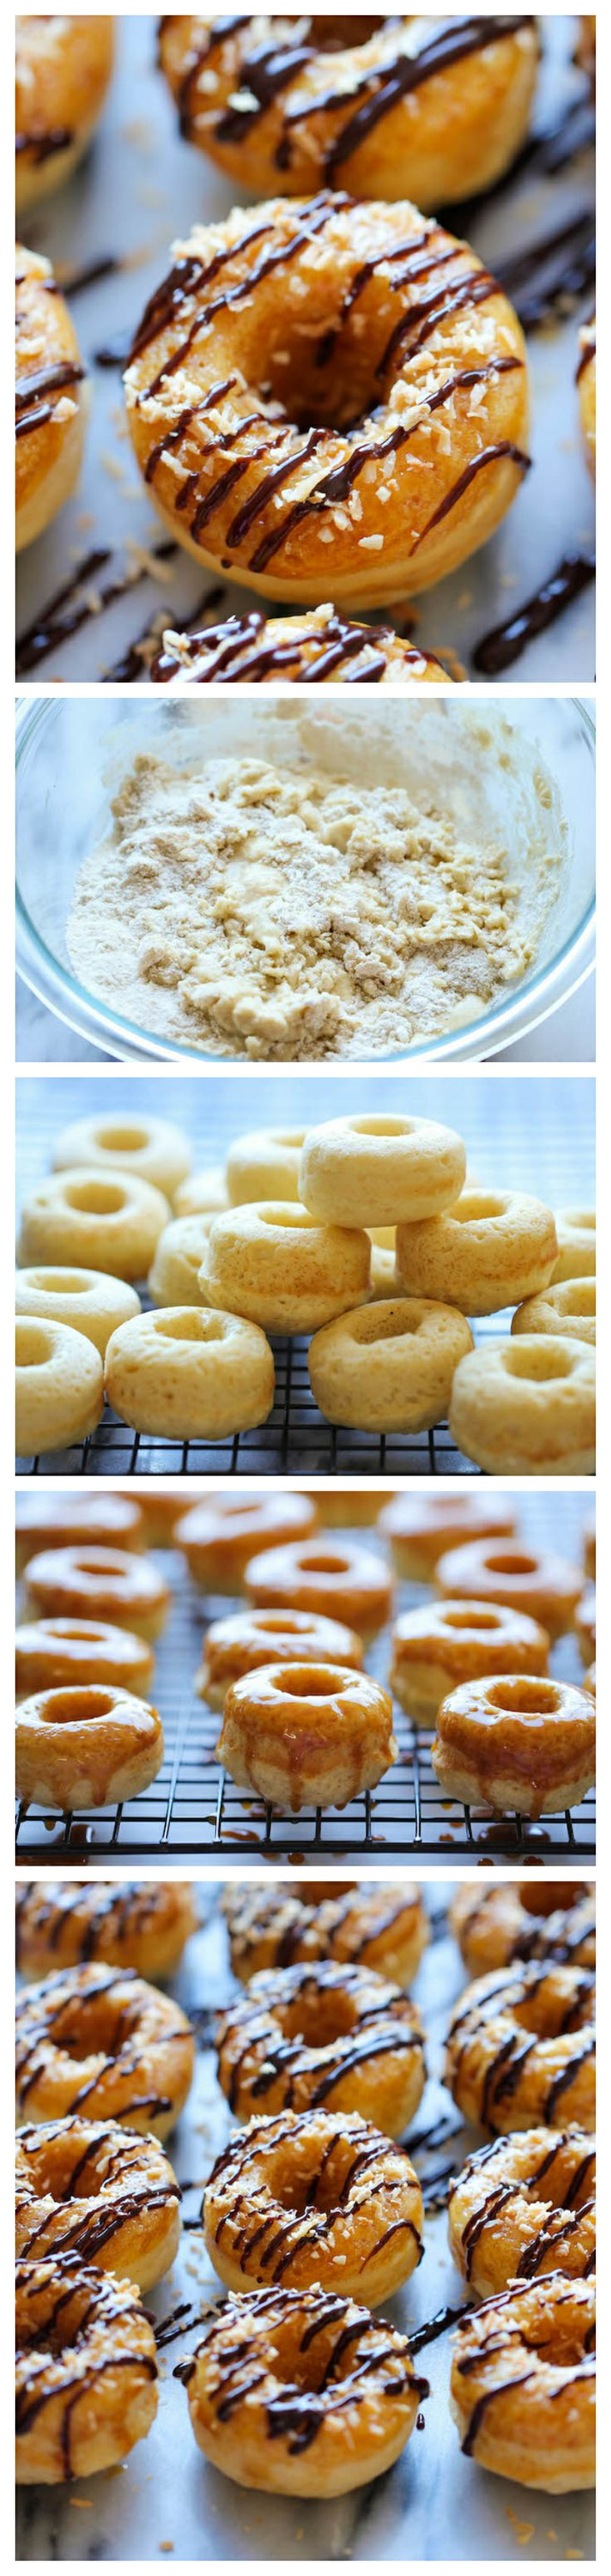 Mini Samoa Donuts - The Girl Scout favorite is turned into an irresistible mini donut form. And it tastes so much better than the original! Check more at http://blog.blackboxs.ru/category/cooking/